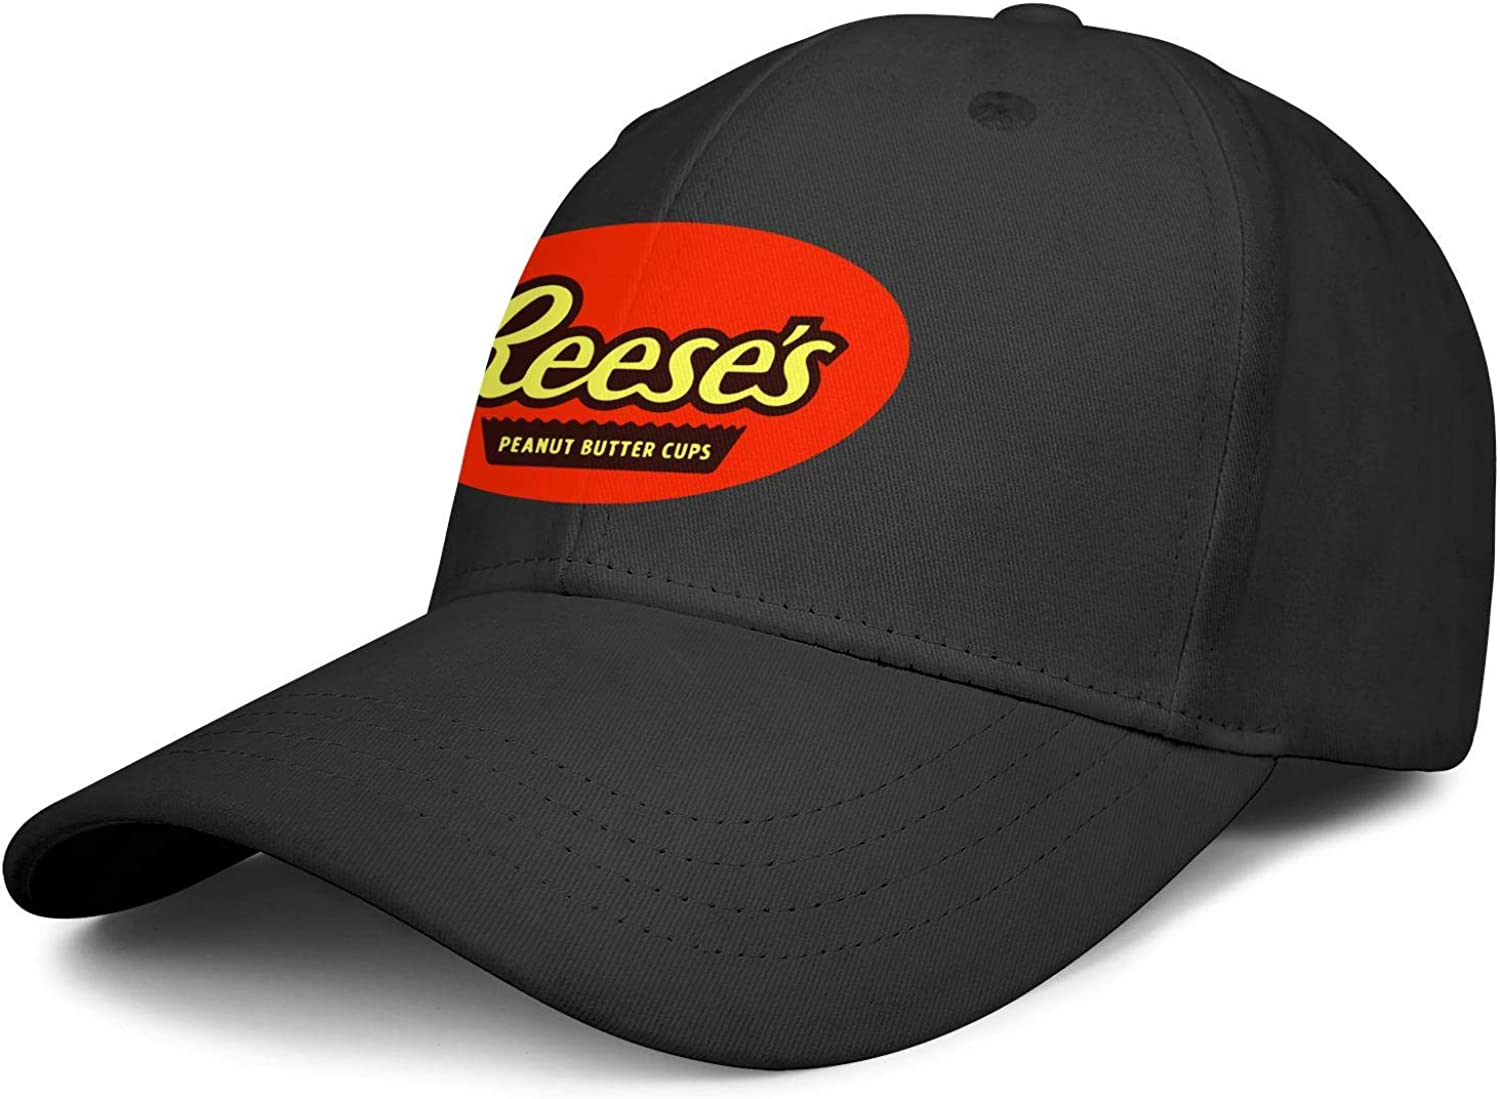 Unisex Stylish Reese-Milk-Chocolate-Peanut-Butter-Cup Baseball Cap Fitted Logo All Cotton Trucker Cap